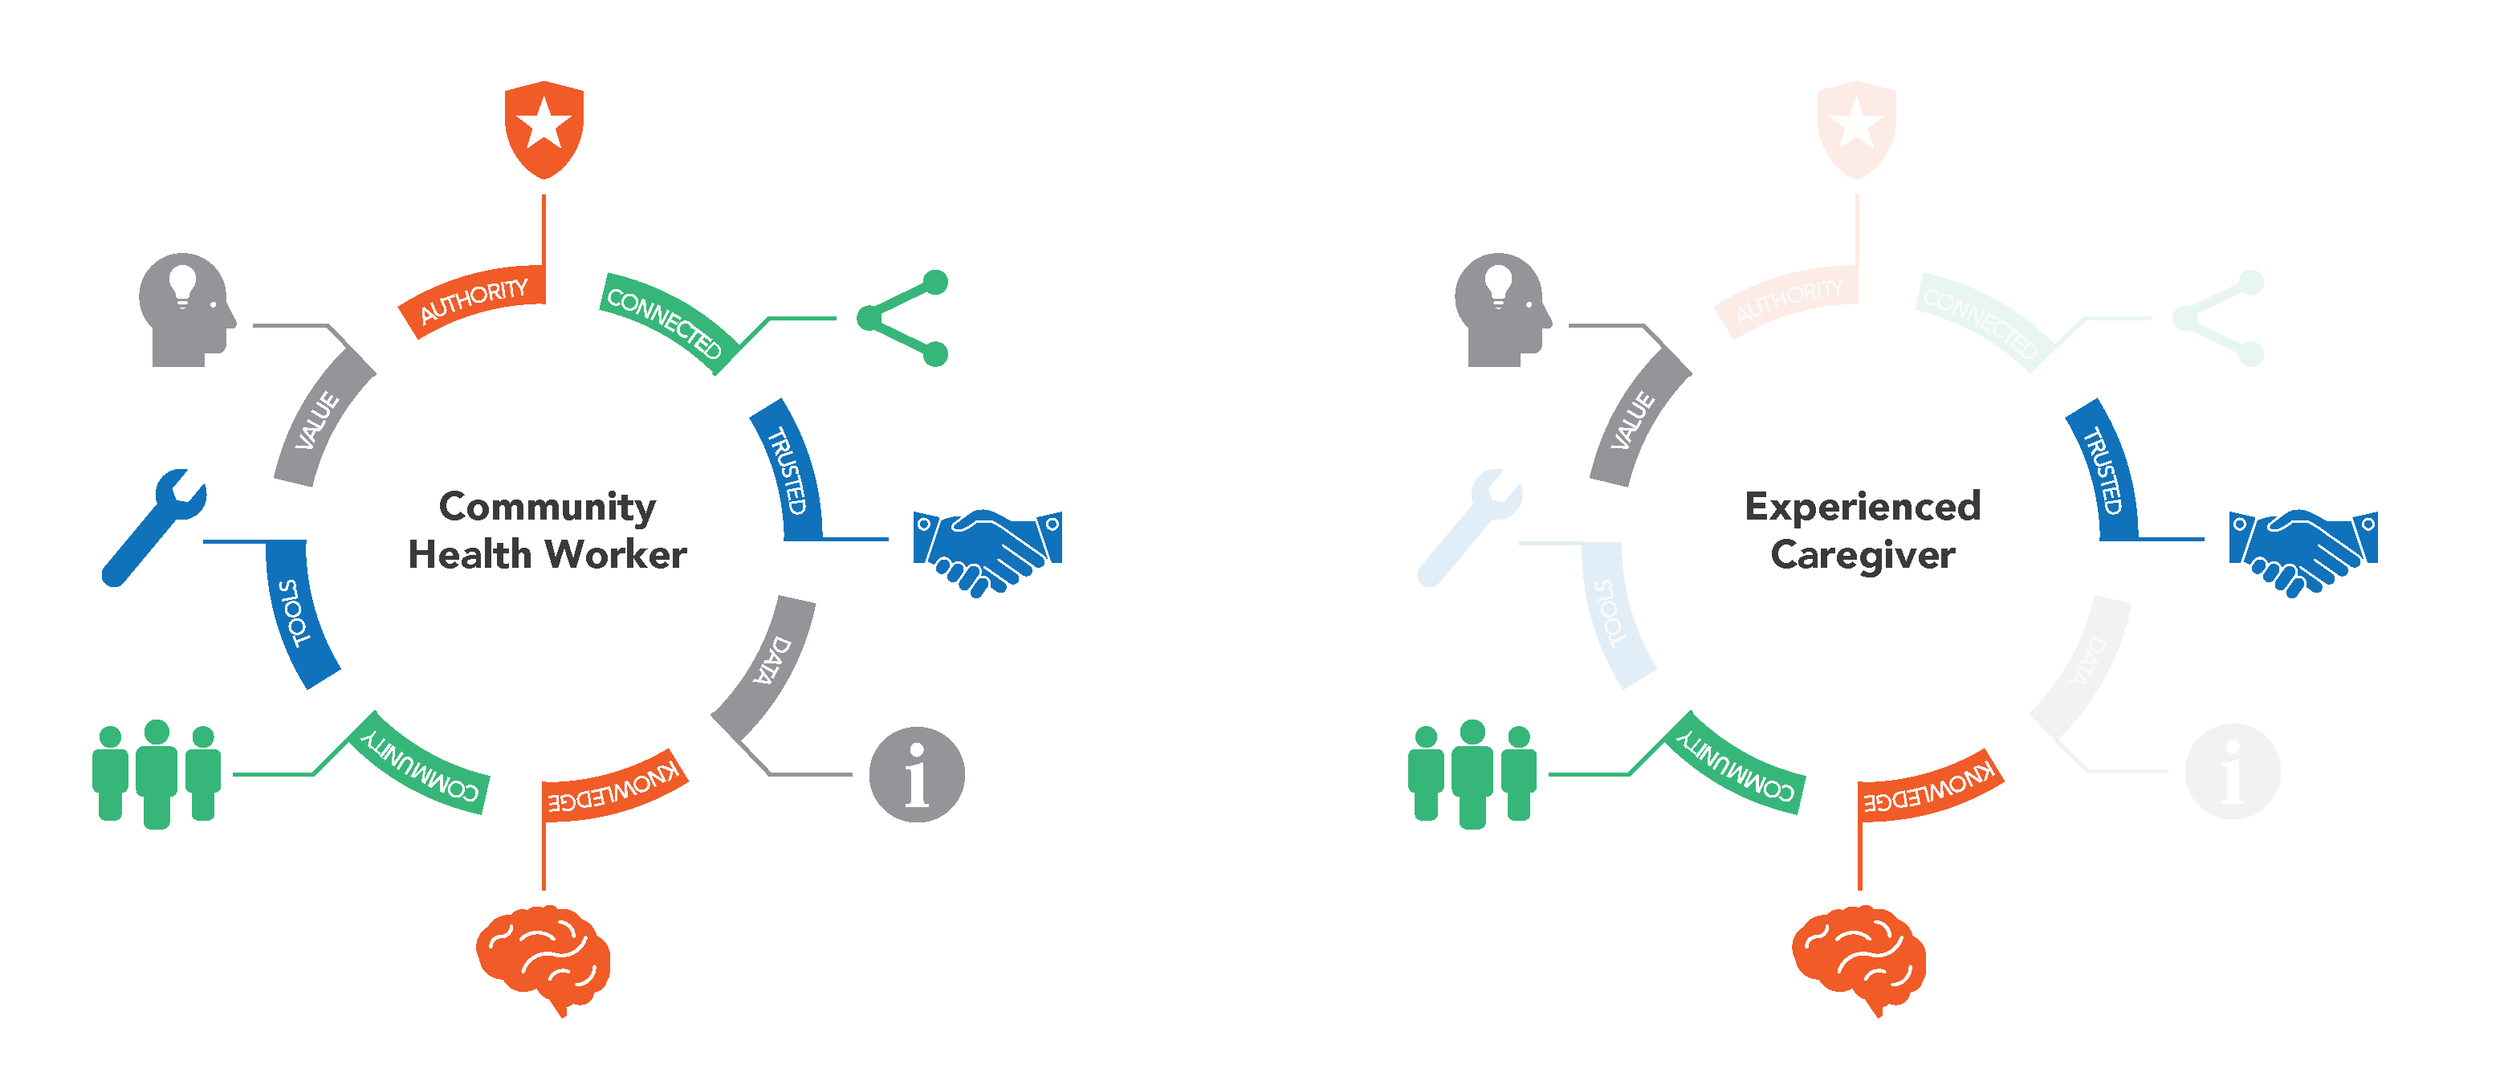 We used this diagram as our design criteria. The solution had to enable experienced caregivers in this way as well as creating new communication channels for CHWs to reach greater numbers of people.